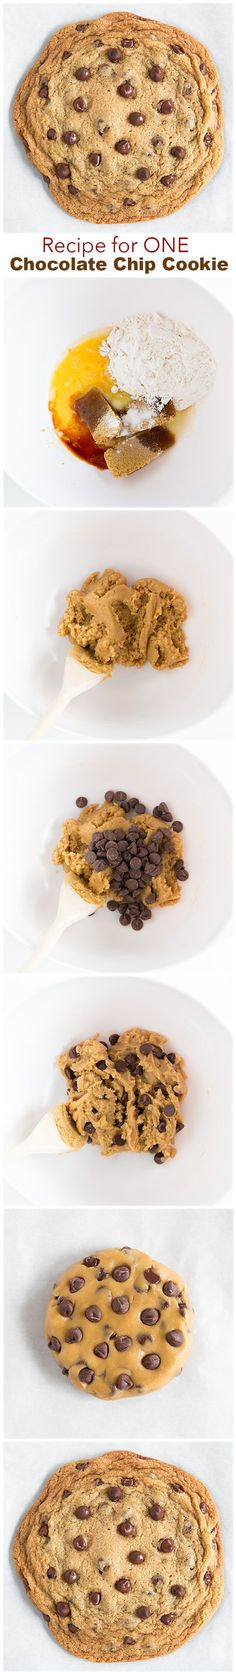 Recipe for One Chocolate Chip Cookie - this is one of my FAVORITE recipes EVER!! Only took 5 minutes prep too.